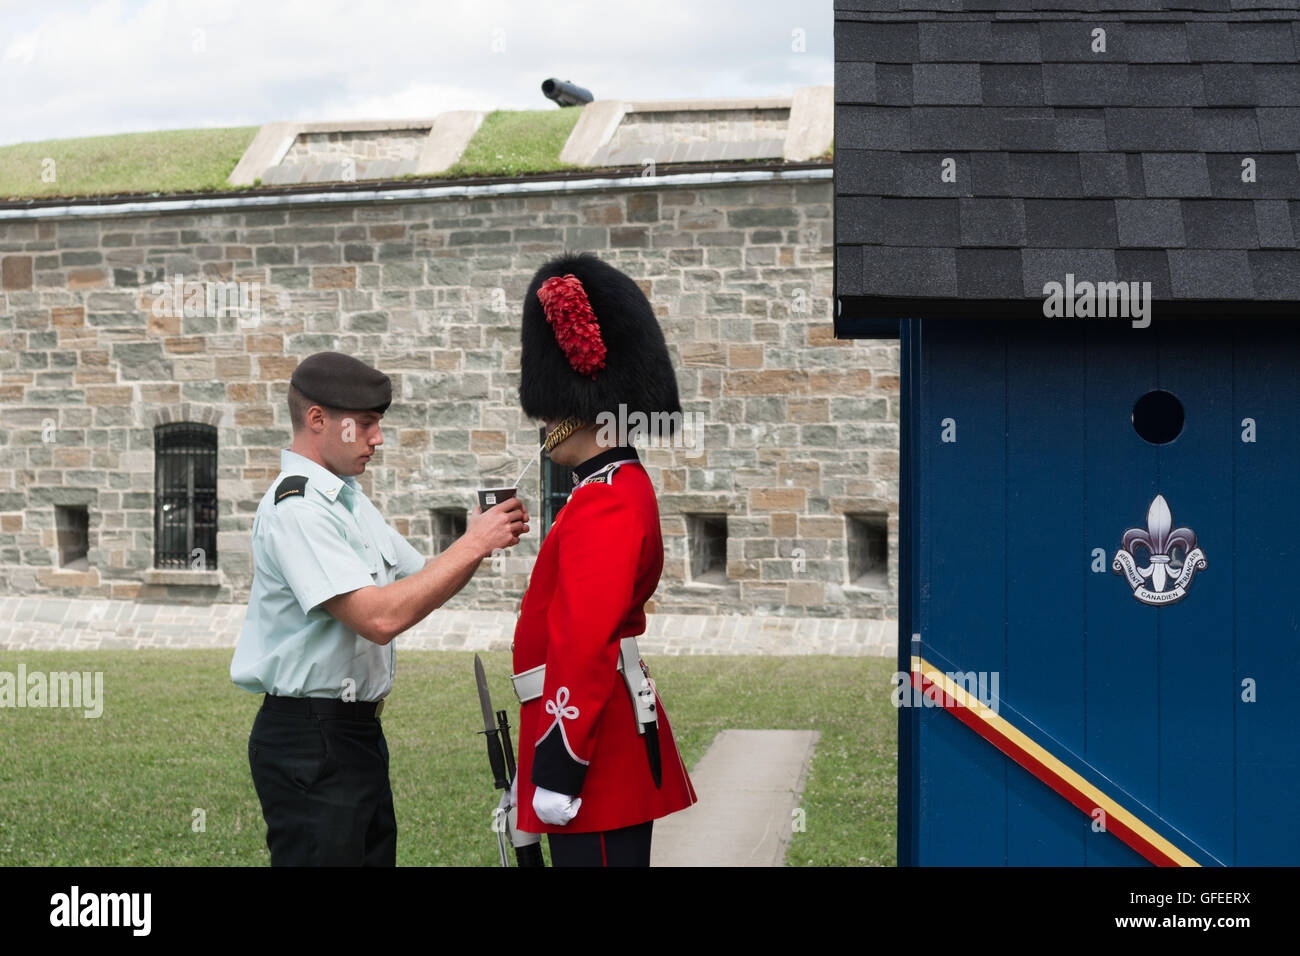 La Citadelle, Quebec, Canada - Guardsman on duty wearing a bearskin hat being given a drink through a straw on a - Stock Image